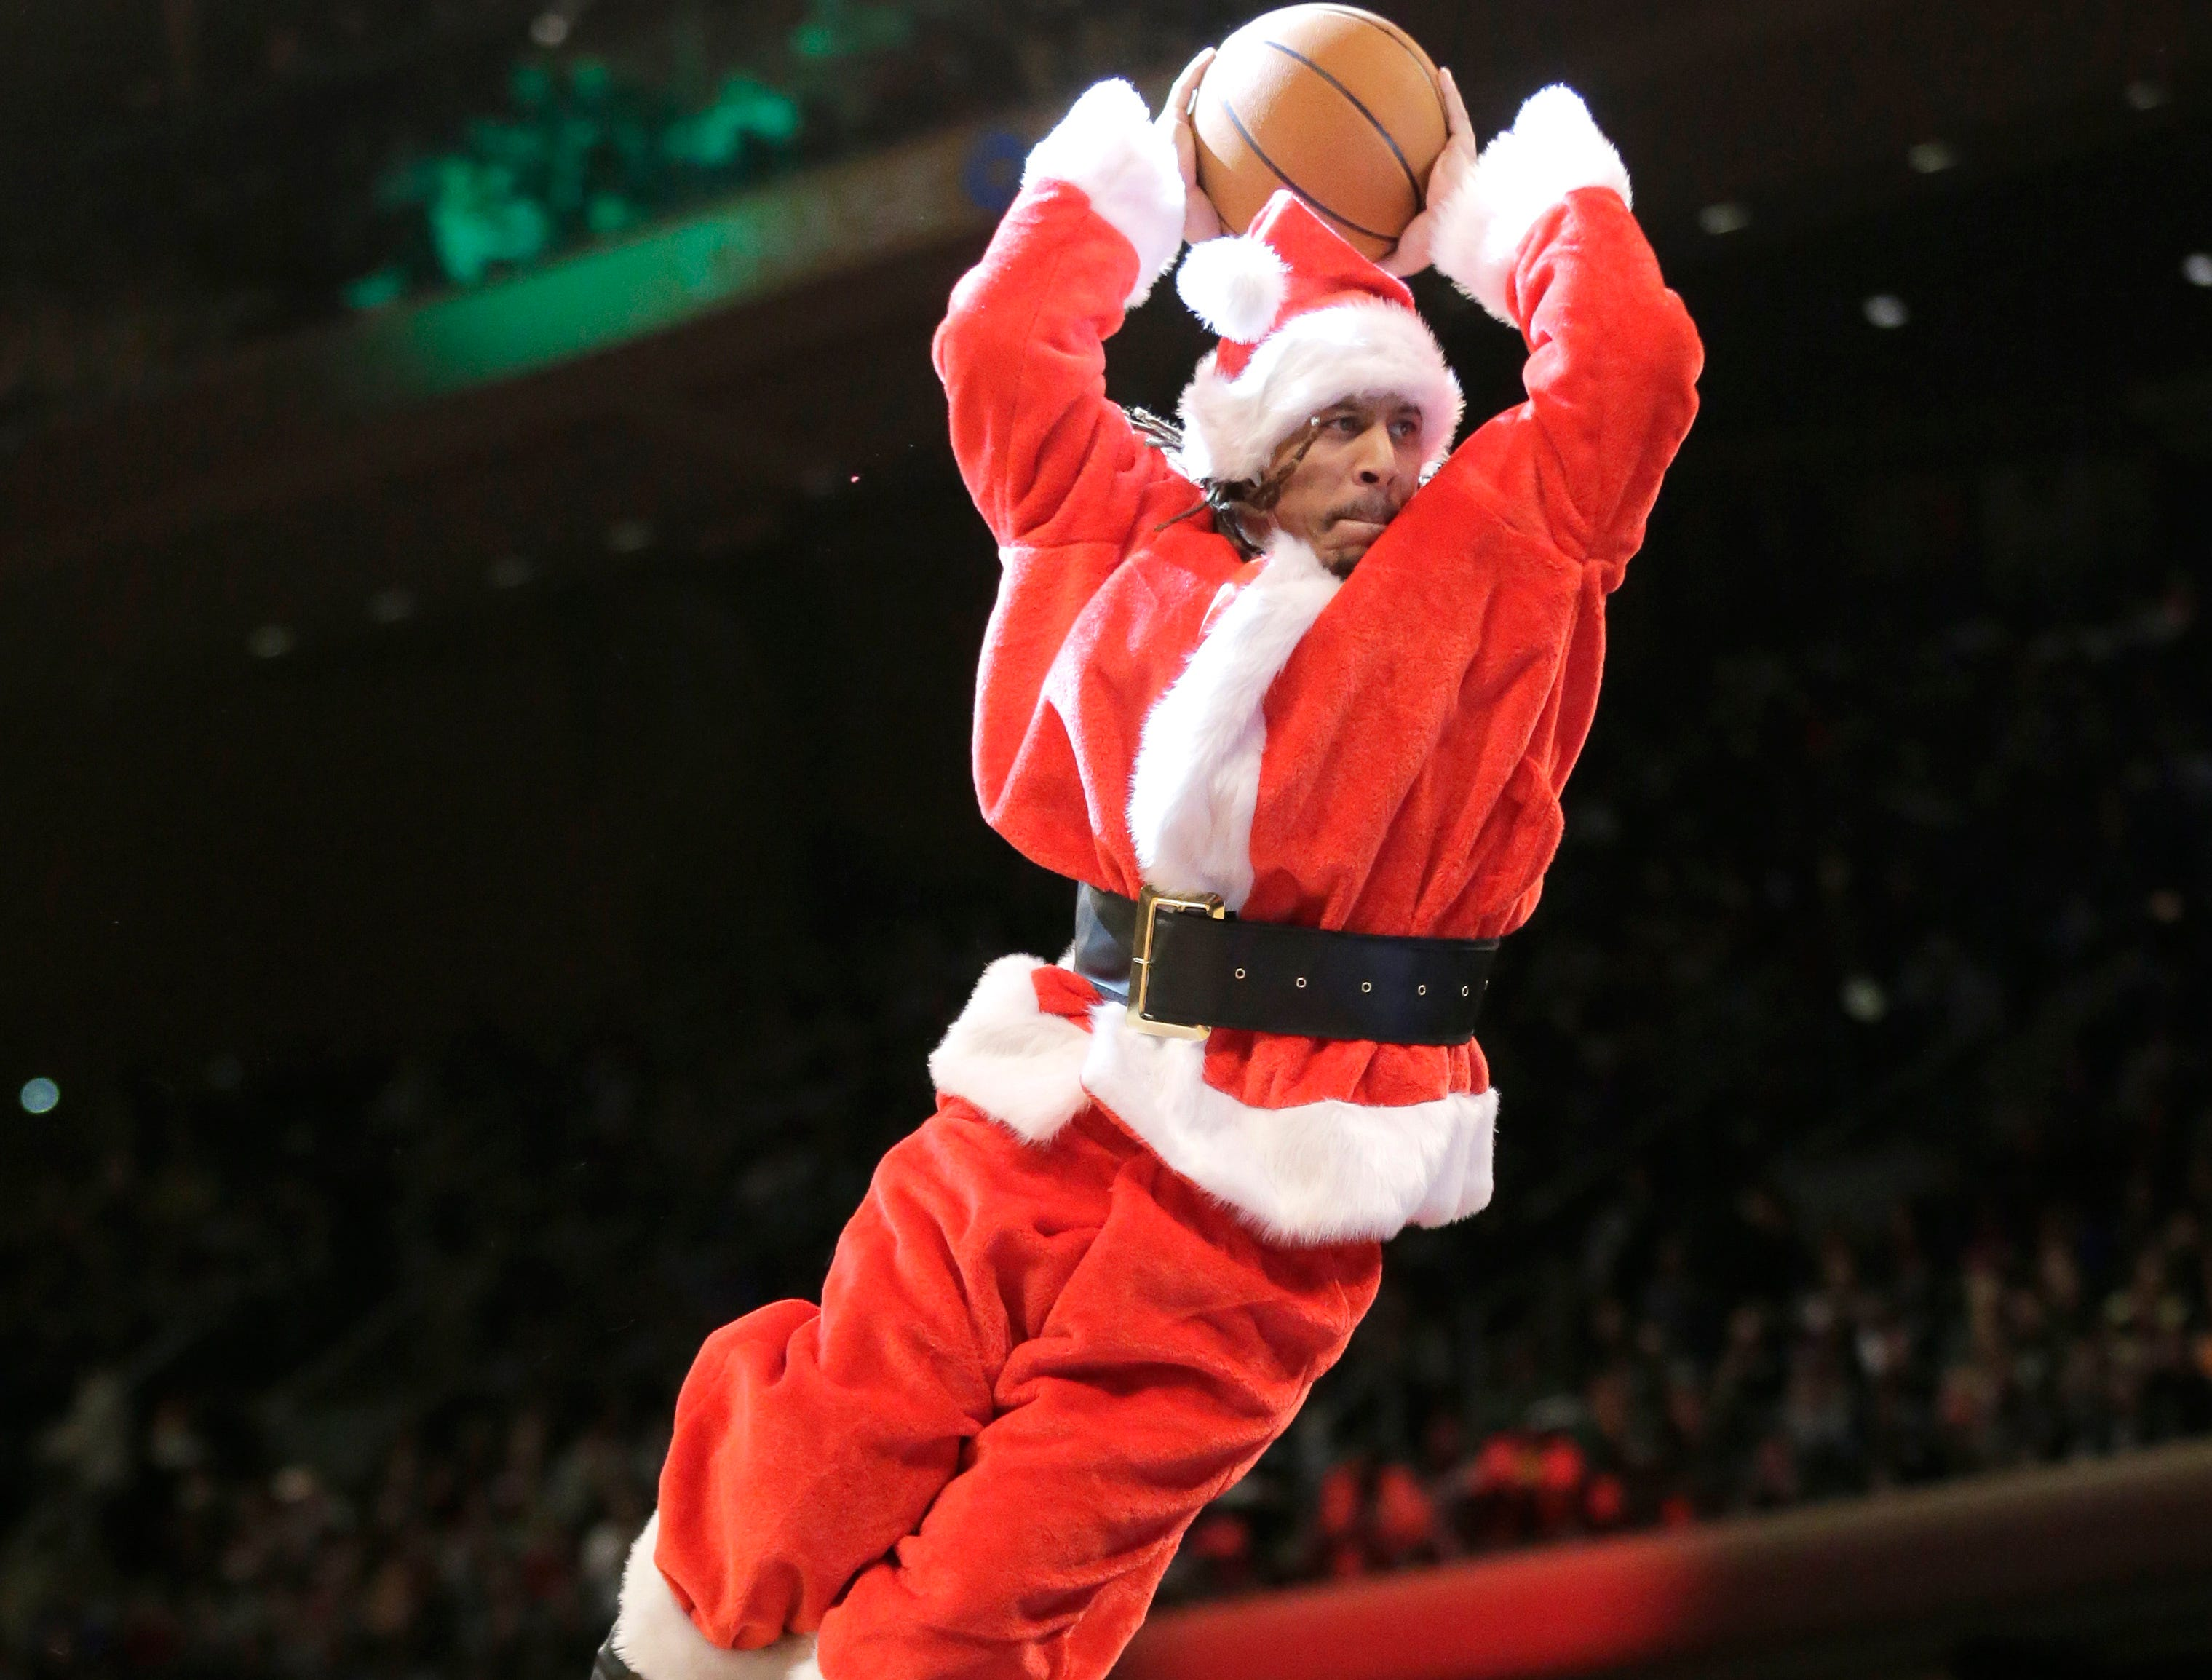 A performer dressed as Santa Claus dunks the ball during a break in the first half of the NBA basketball game between the New York Knicks and the Milwaukee Bucks, Tuesday, Dec. 25, 2018, in New York.